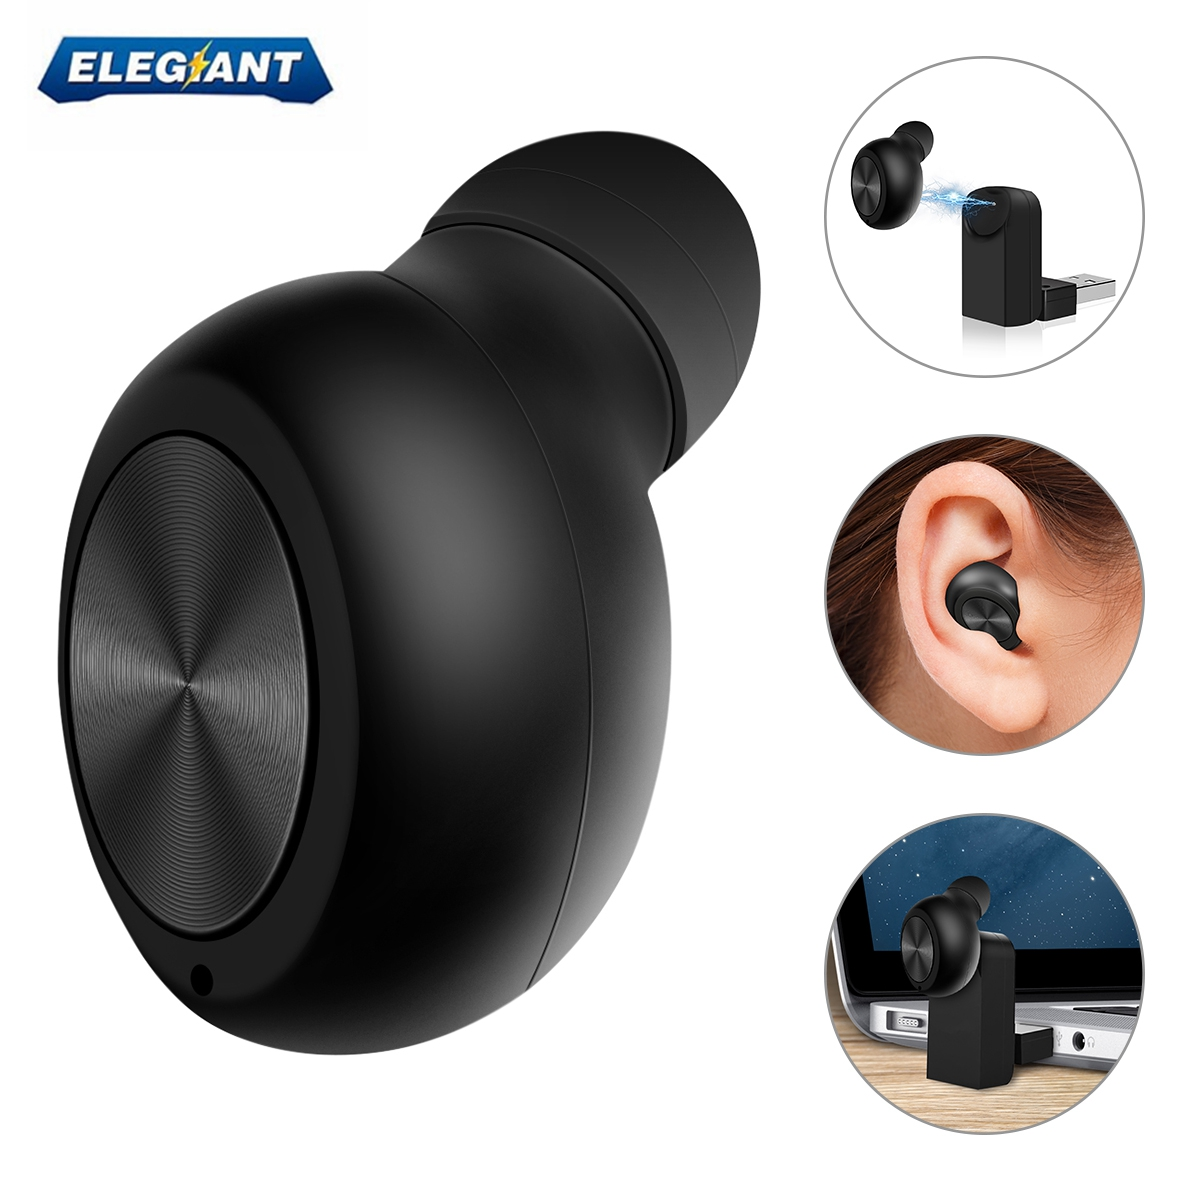 ELEGIANT Mini Wireless bluetooth Earbuds Headphones Magnetic USB Charging Mini In-ear Headset Earbud Earphone Hands-free With Noise Reduction Built-in Mic for Office Business